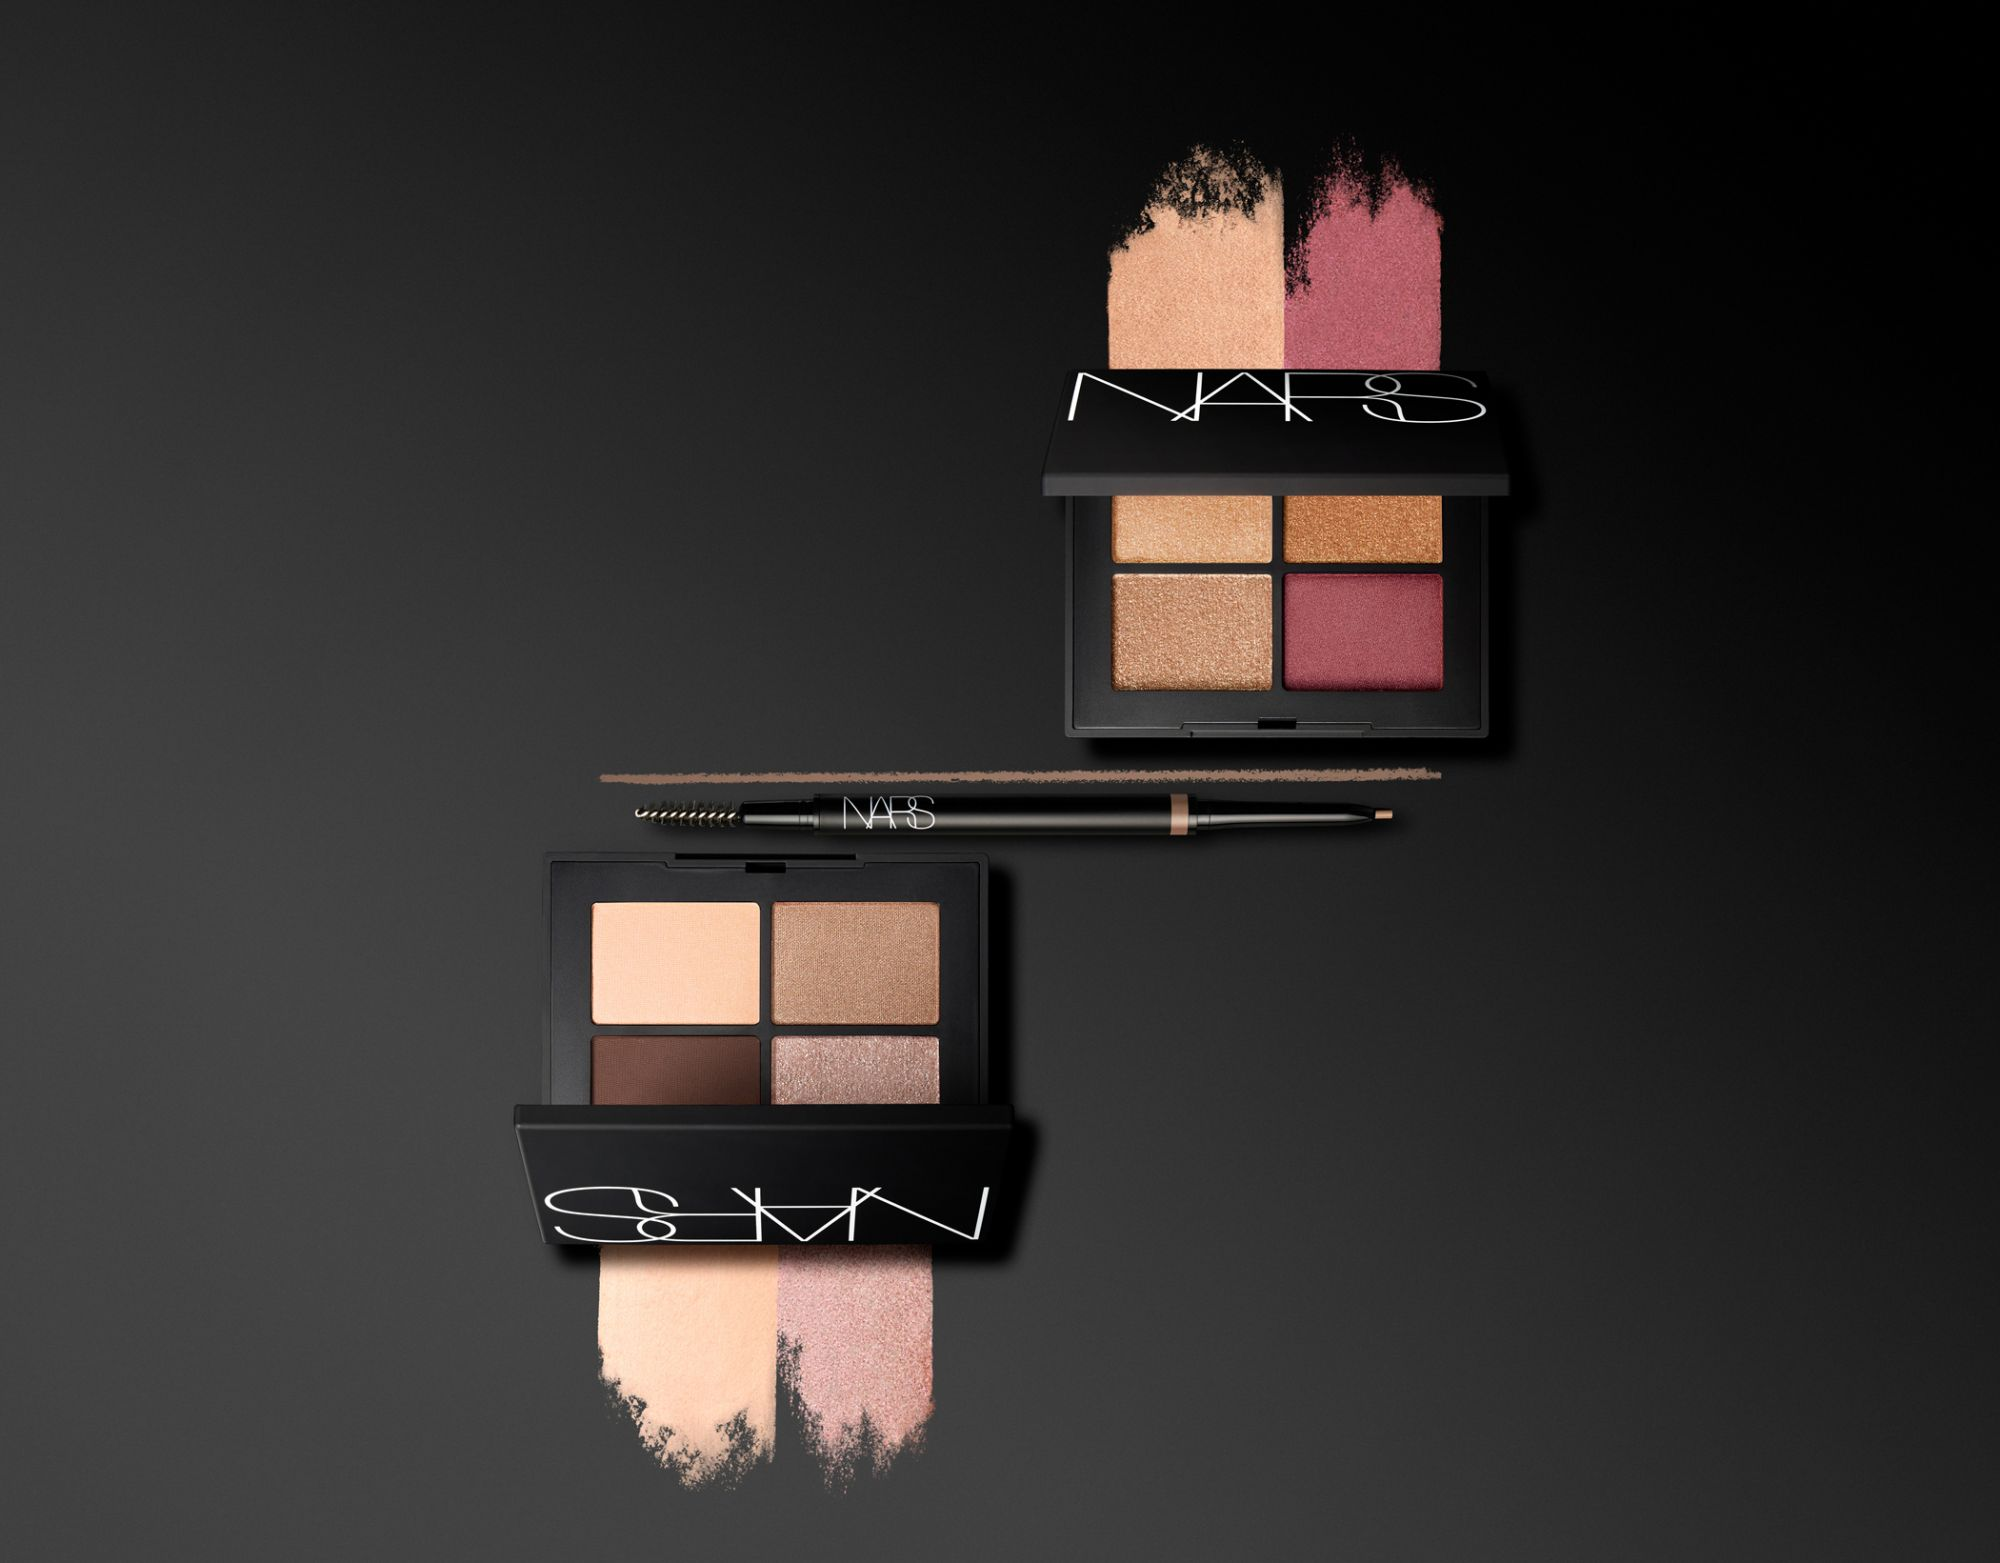 Nars Launches An Eyeshadow Palette Called 'Singapore'